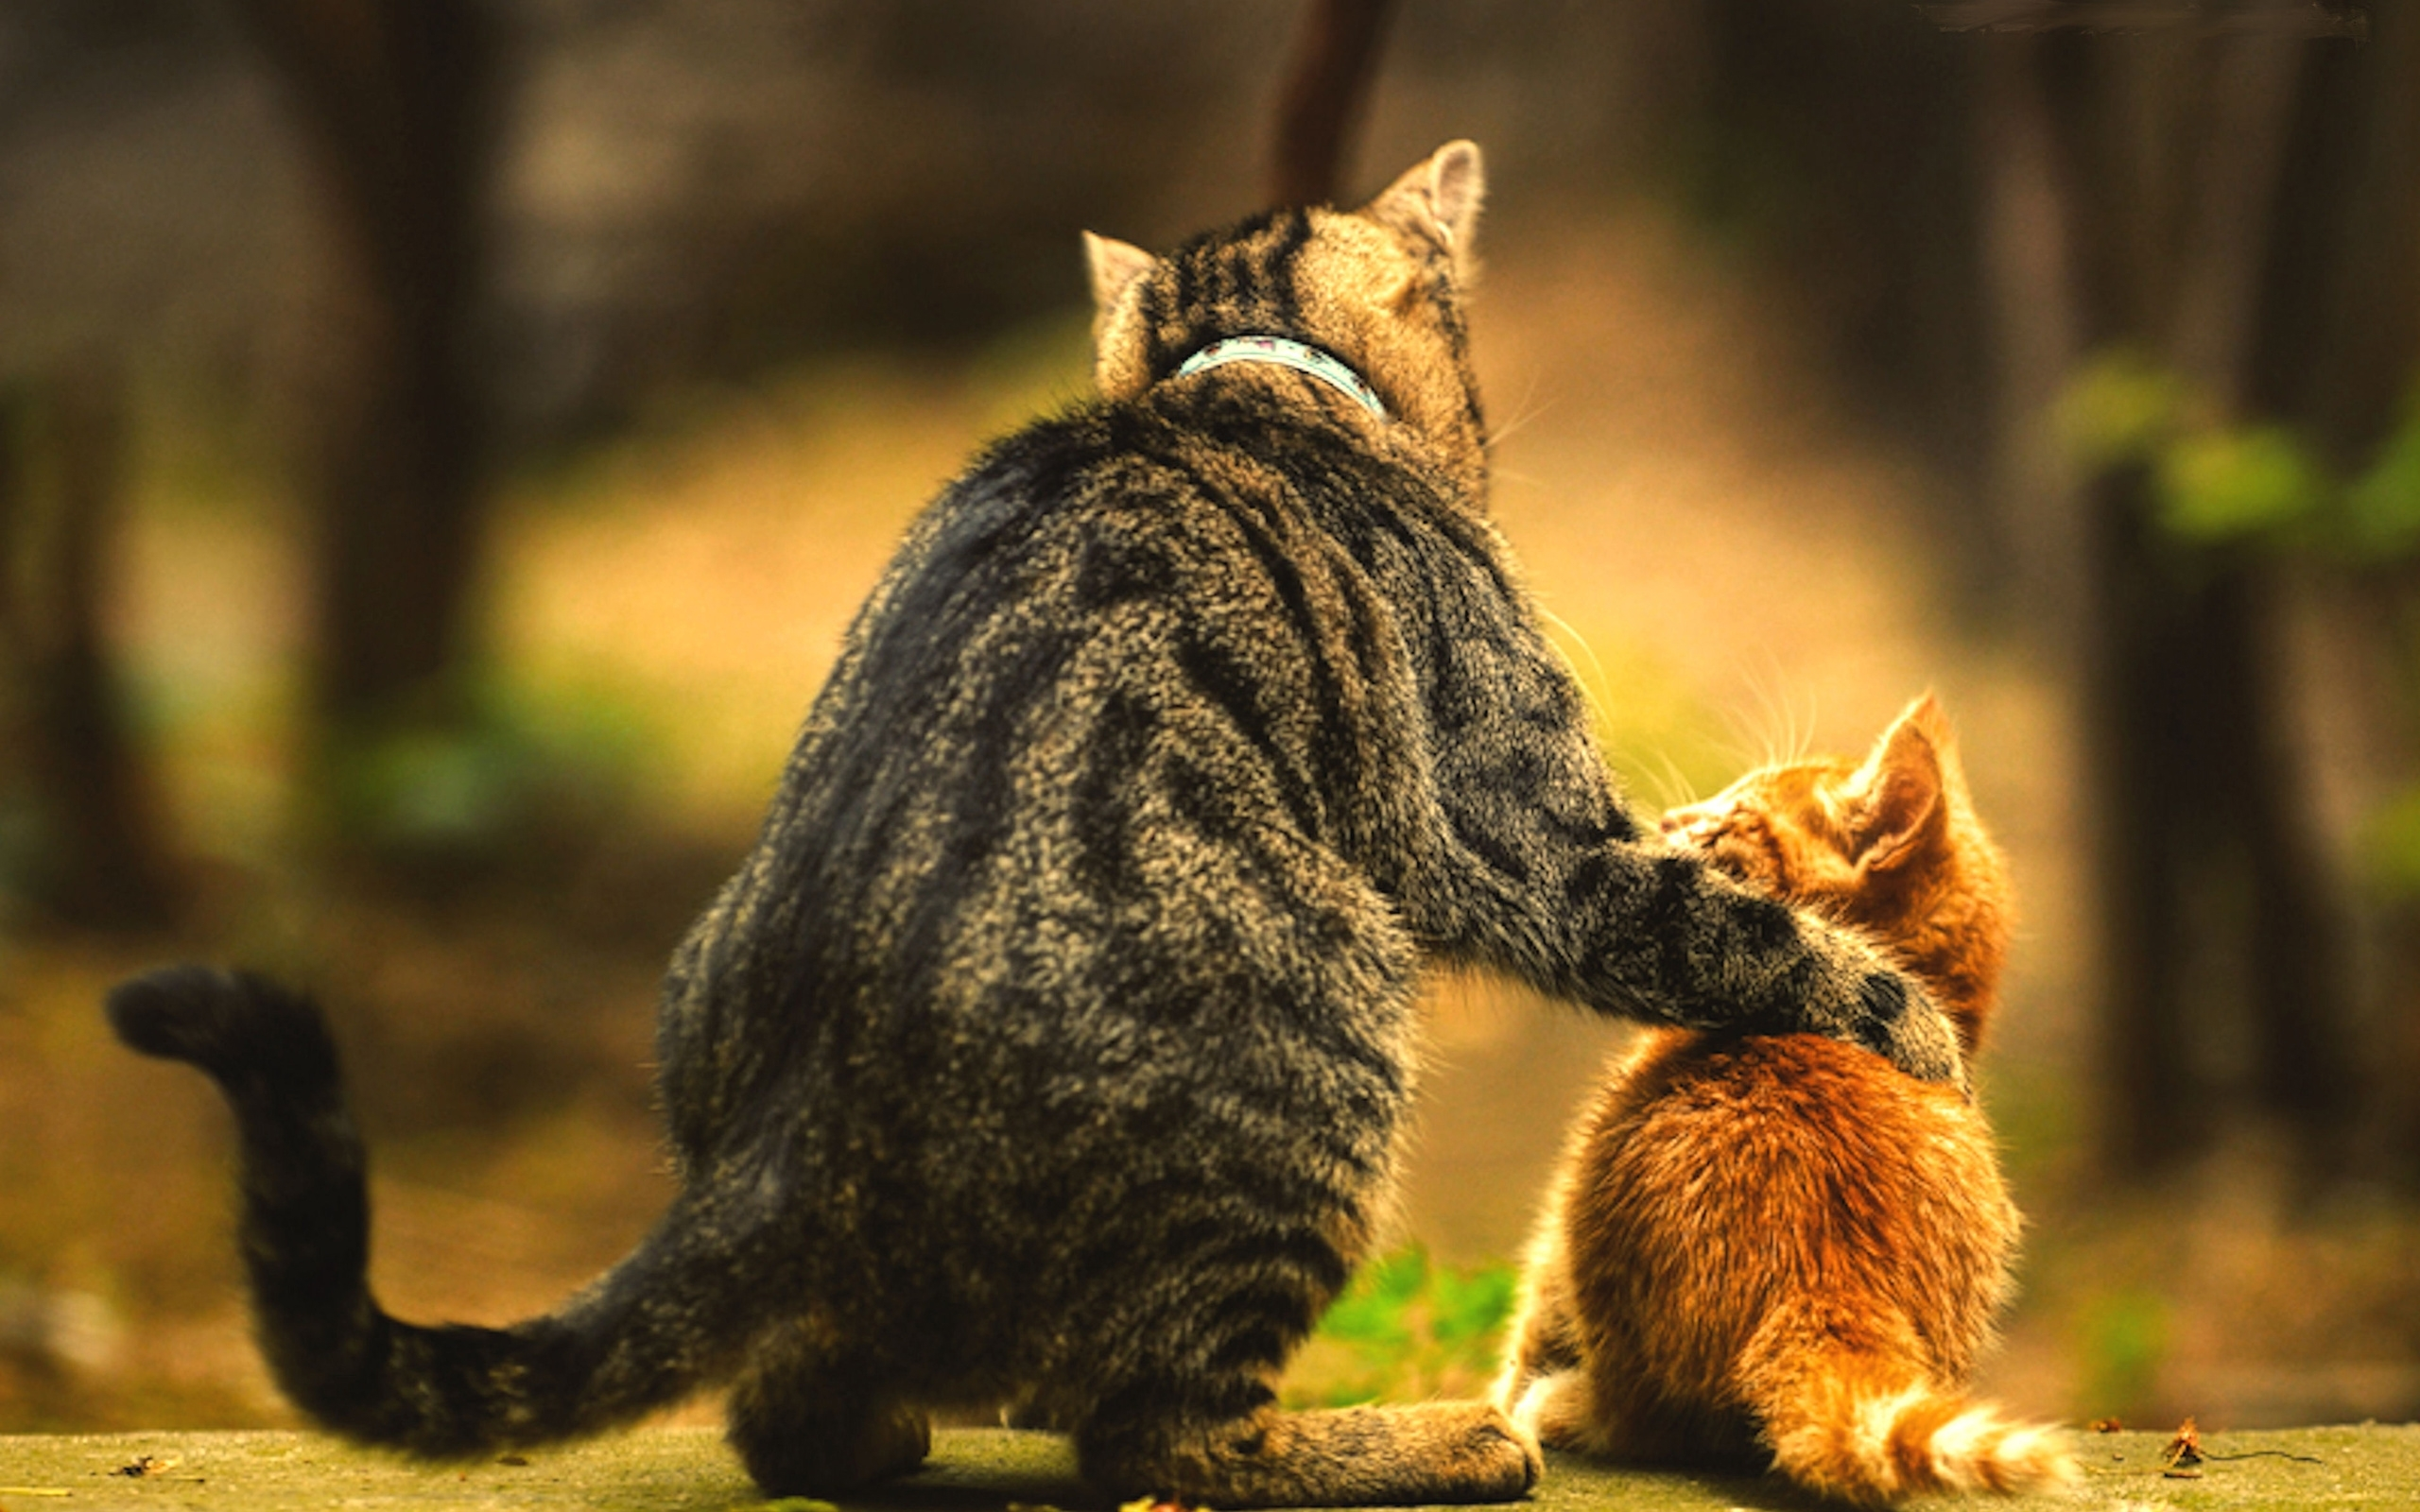 Kitten wallpapers and desktop backgrounds up to 8k - Kitten backgrounds ...